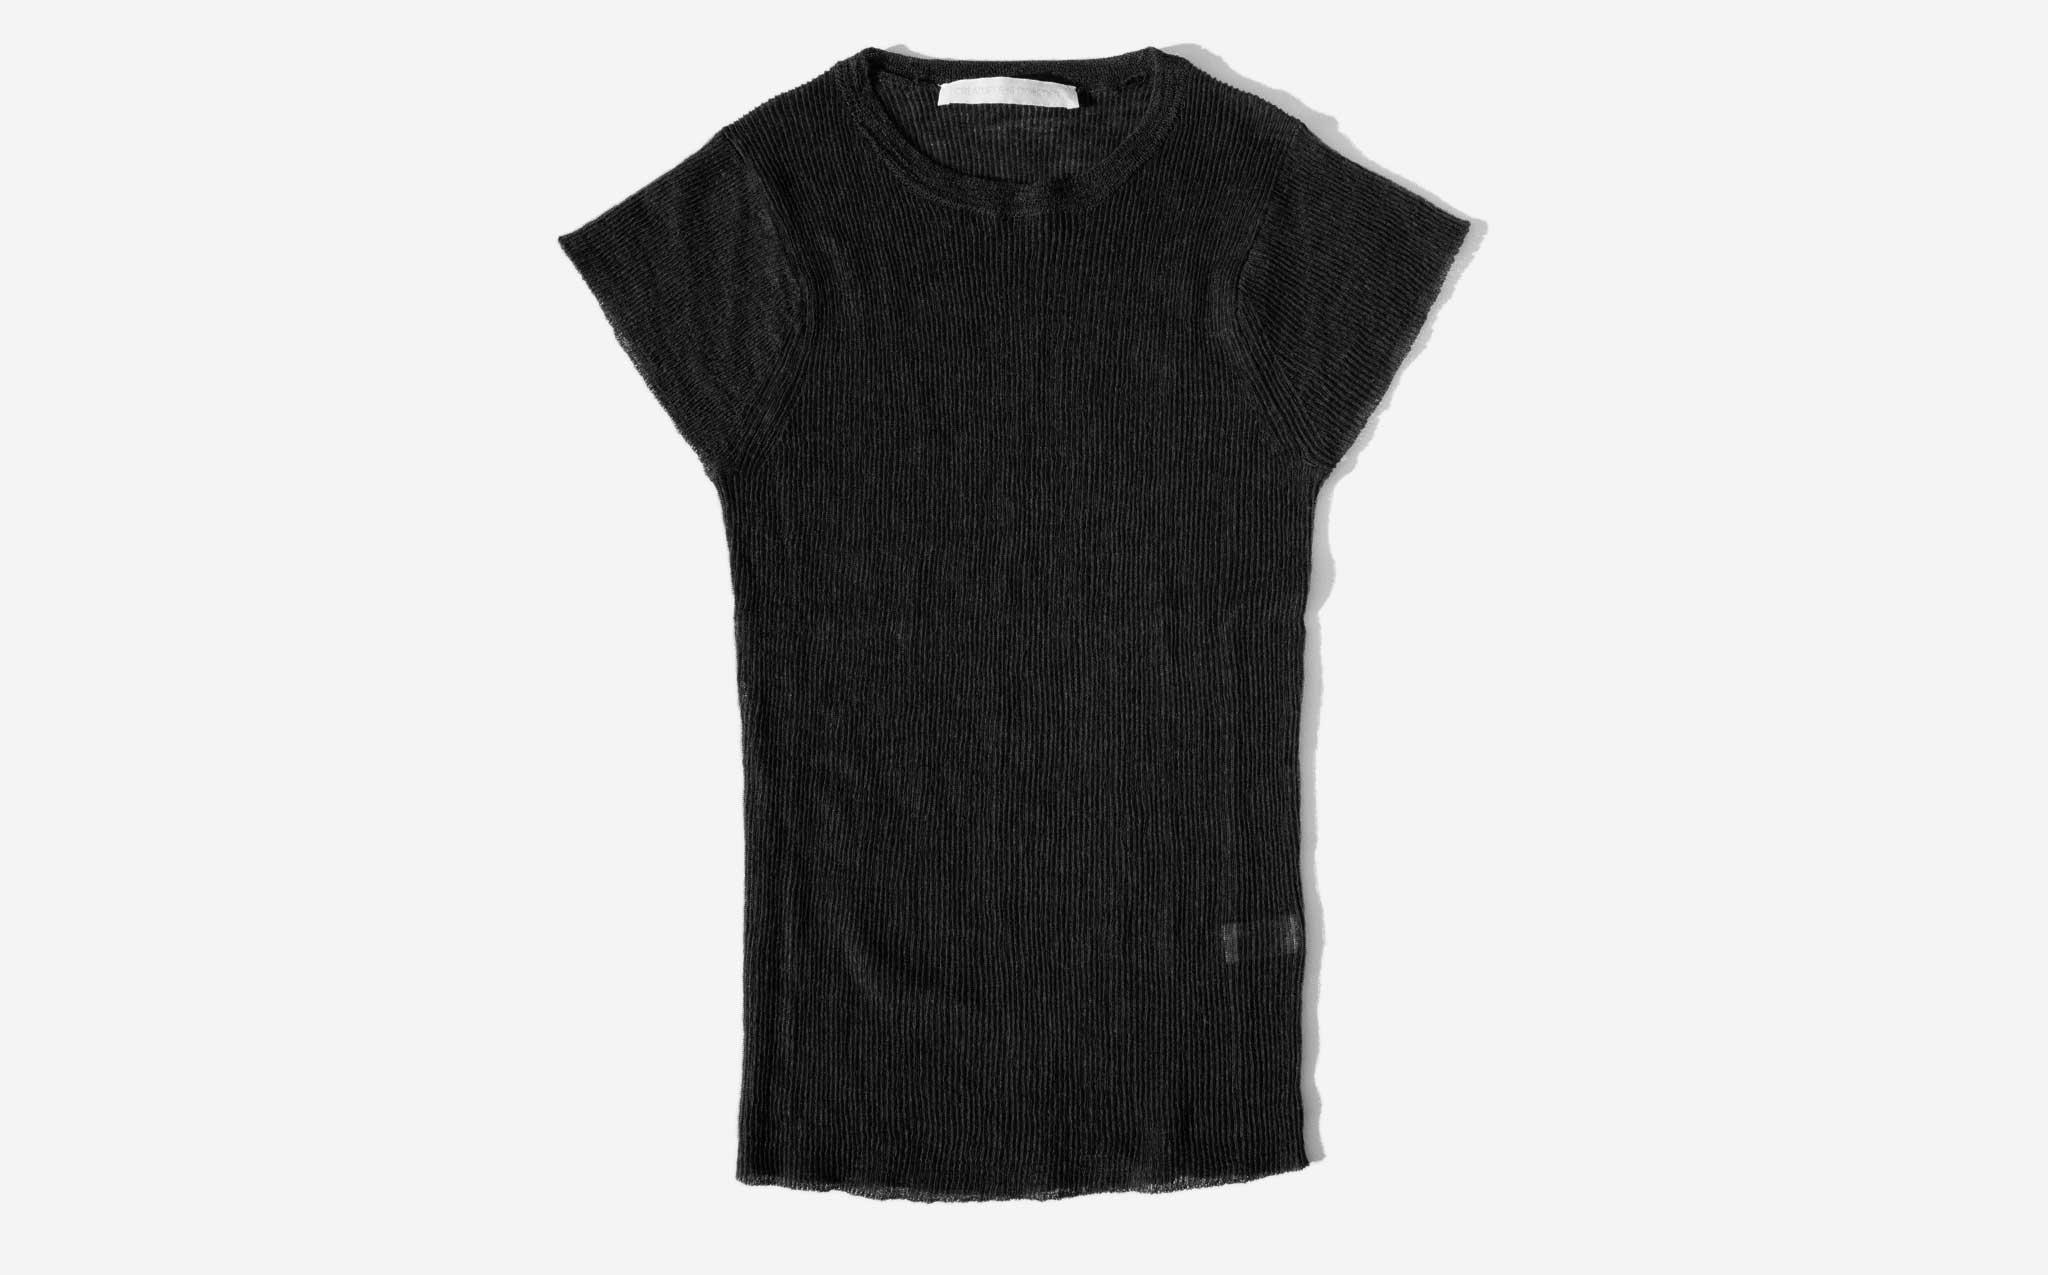 Creatures Of Comfort Black Shrunken Tee